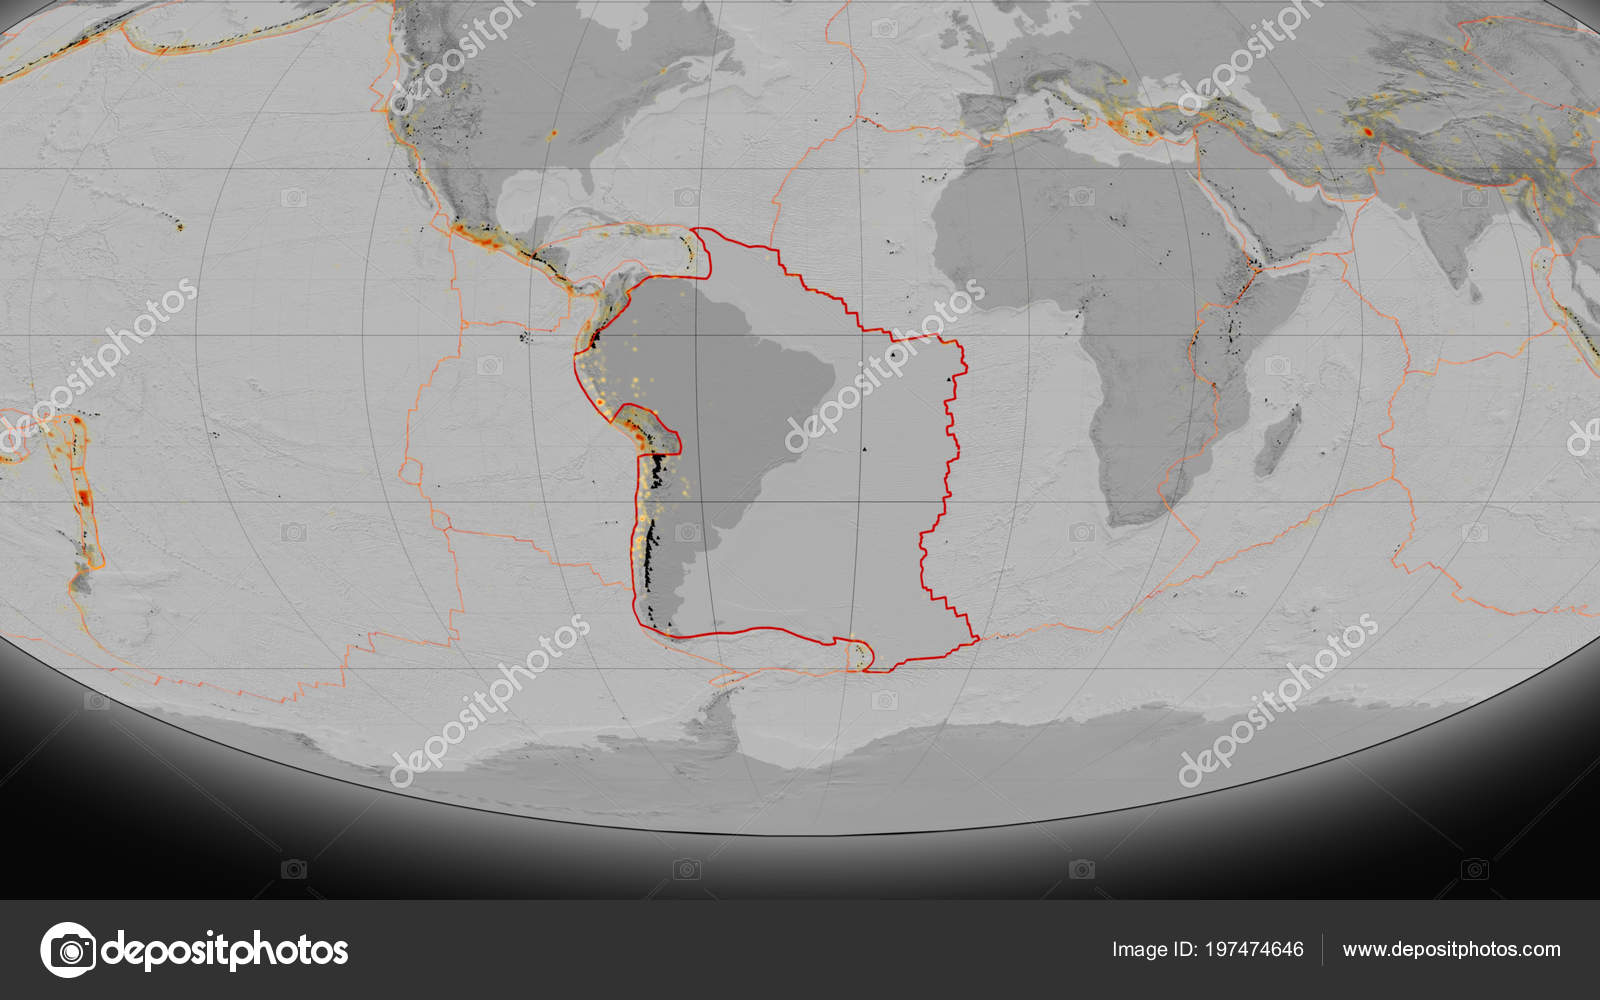 South America Tectonic Plate Outlined Global Grayscale Elevation Map